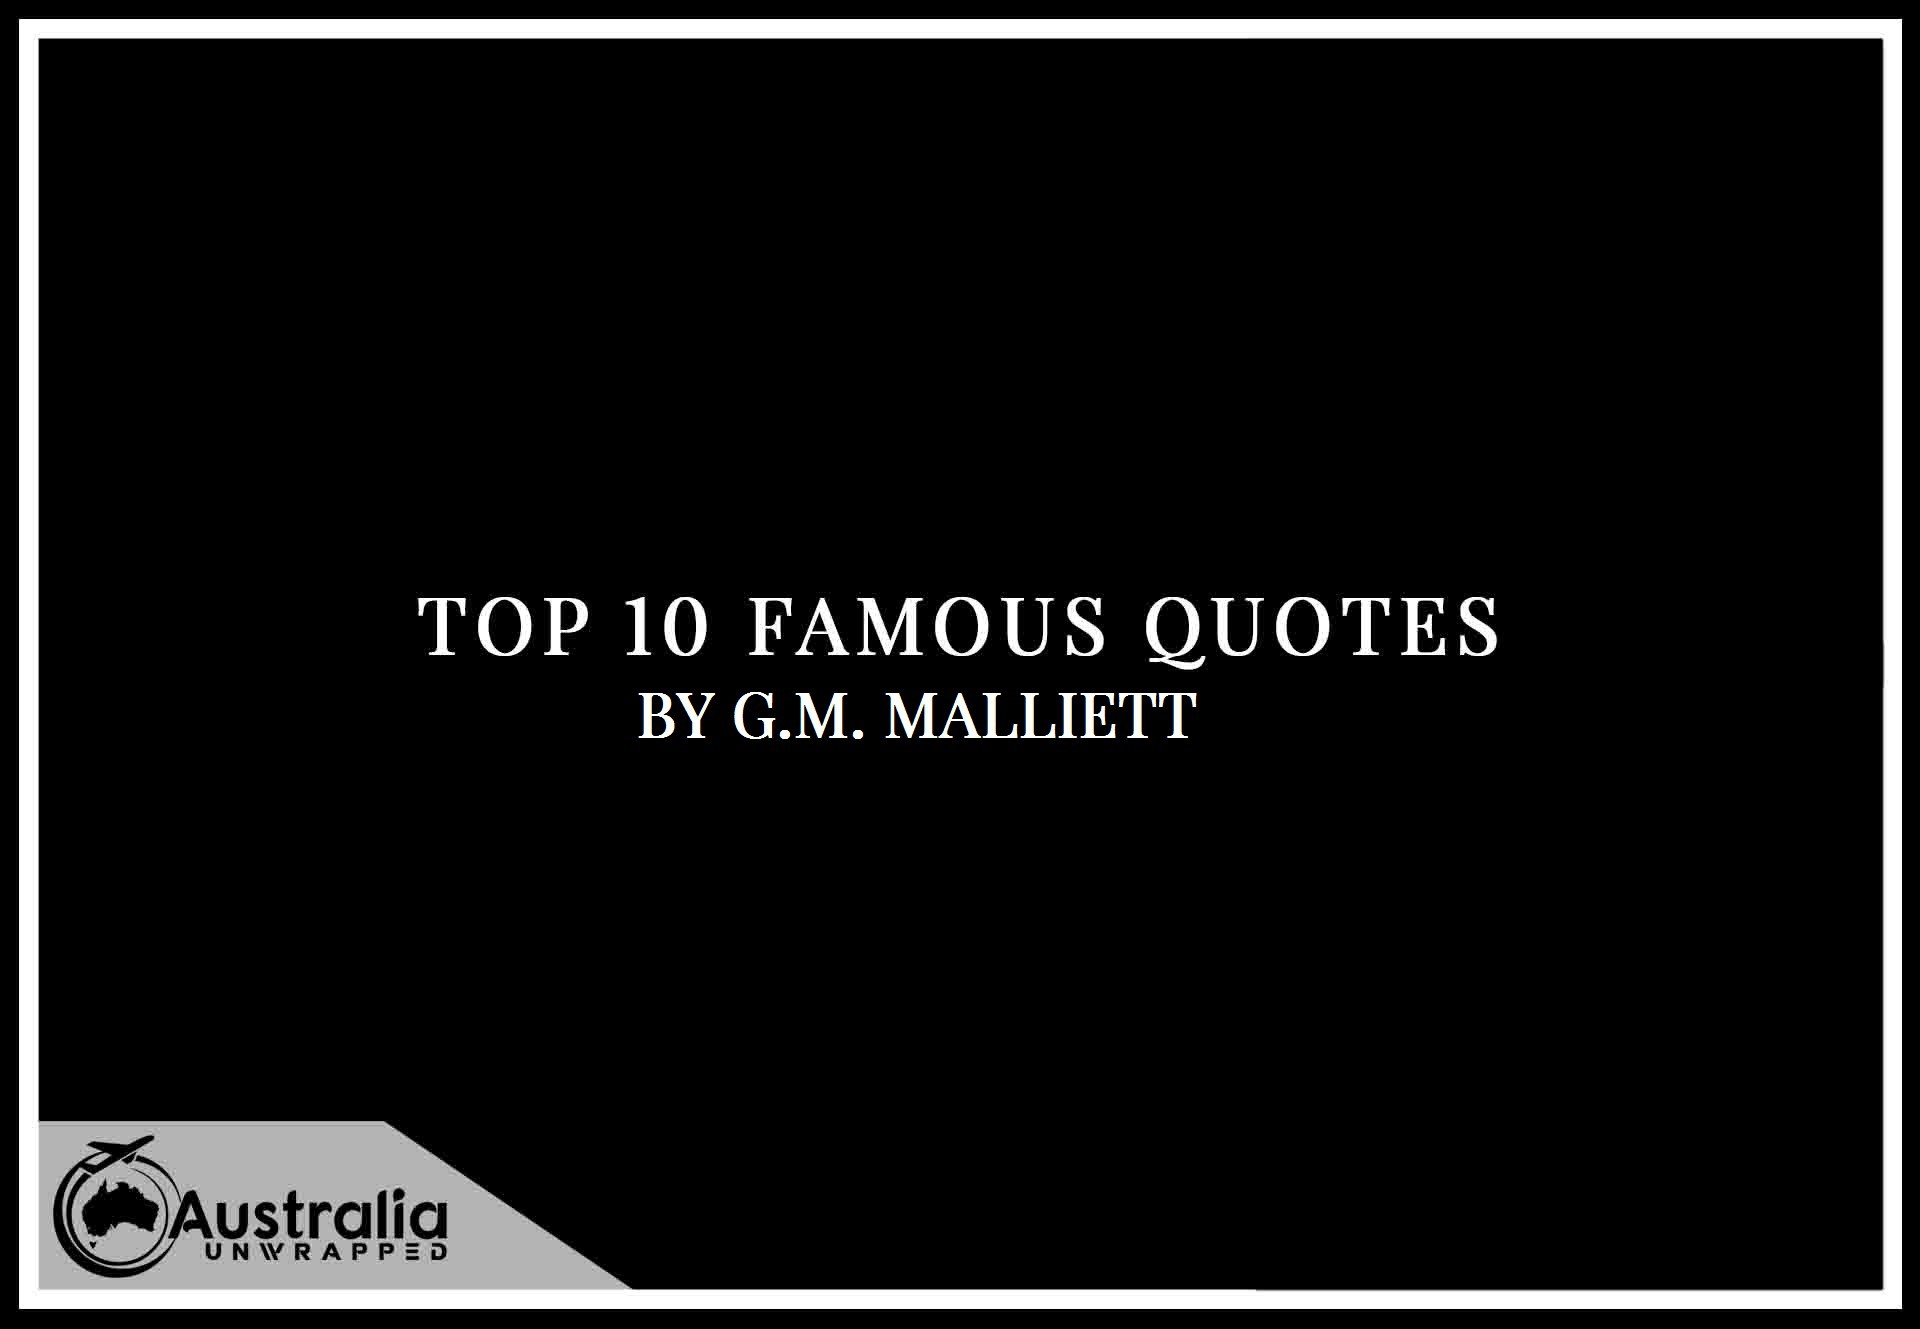 G.M. Malliet's Top 10 Popular and Famous Quotes